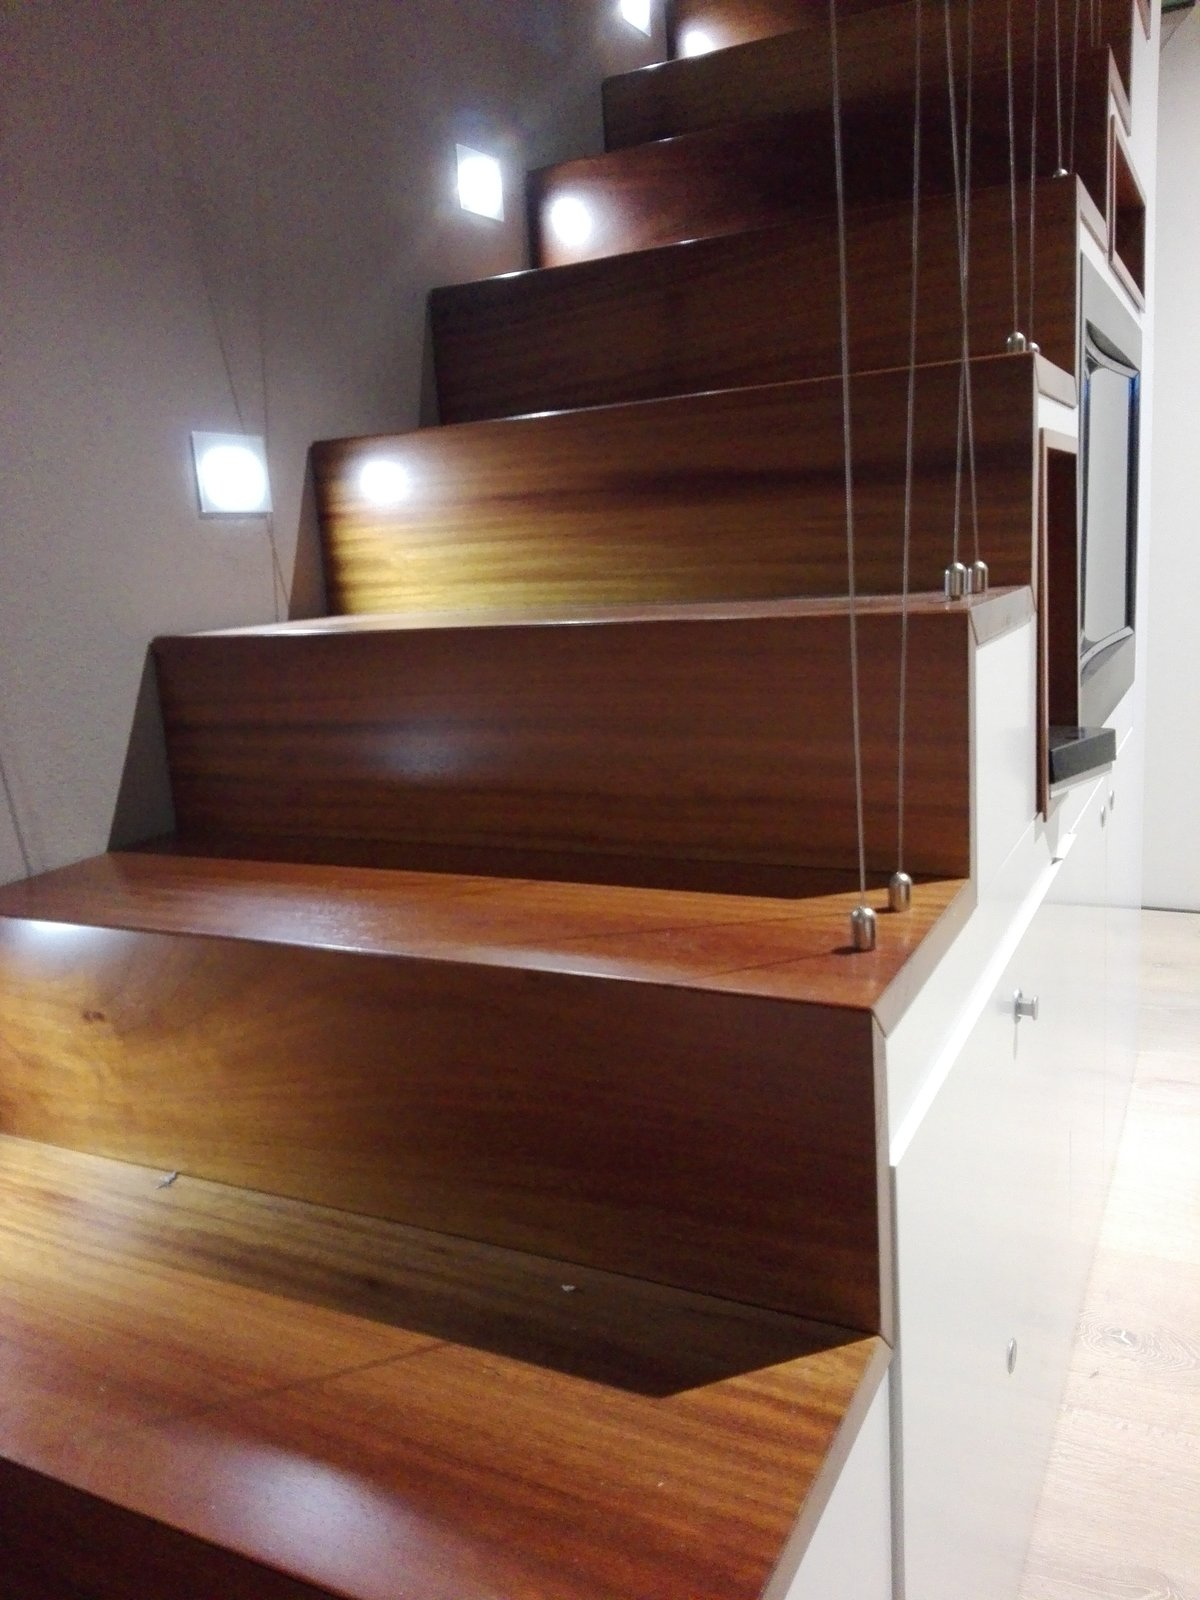 Staircase, Cable Railing, and Wood Tread wooden staircase to the mnaster closet, detail of the handrail made in stainless steel cables  CAFElab architects turns an old farmhouse into a luxury residence in Rome